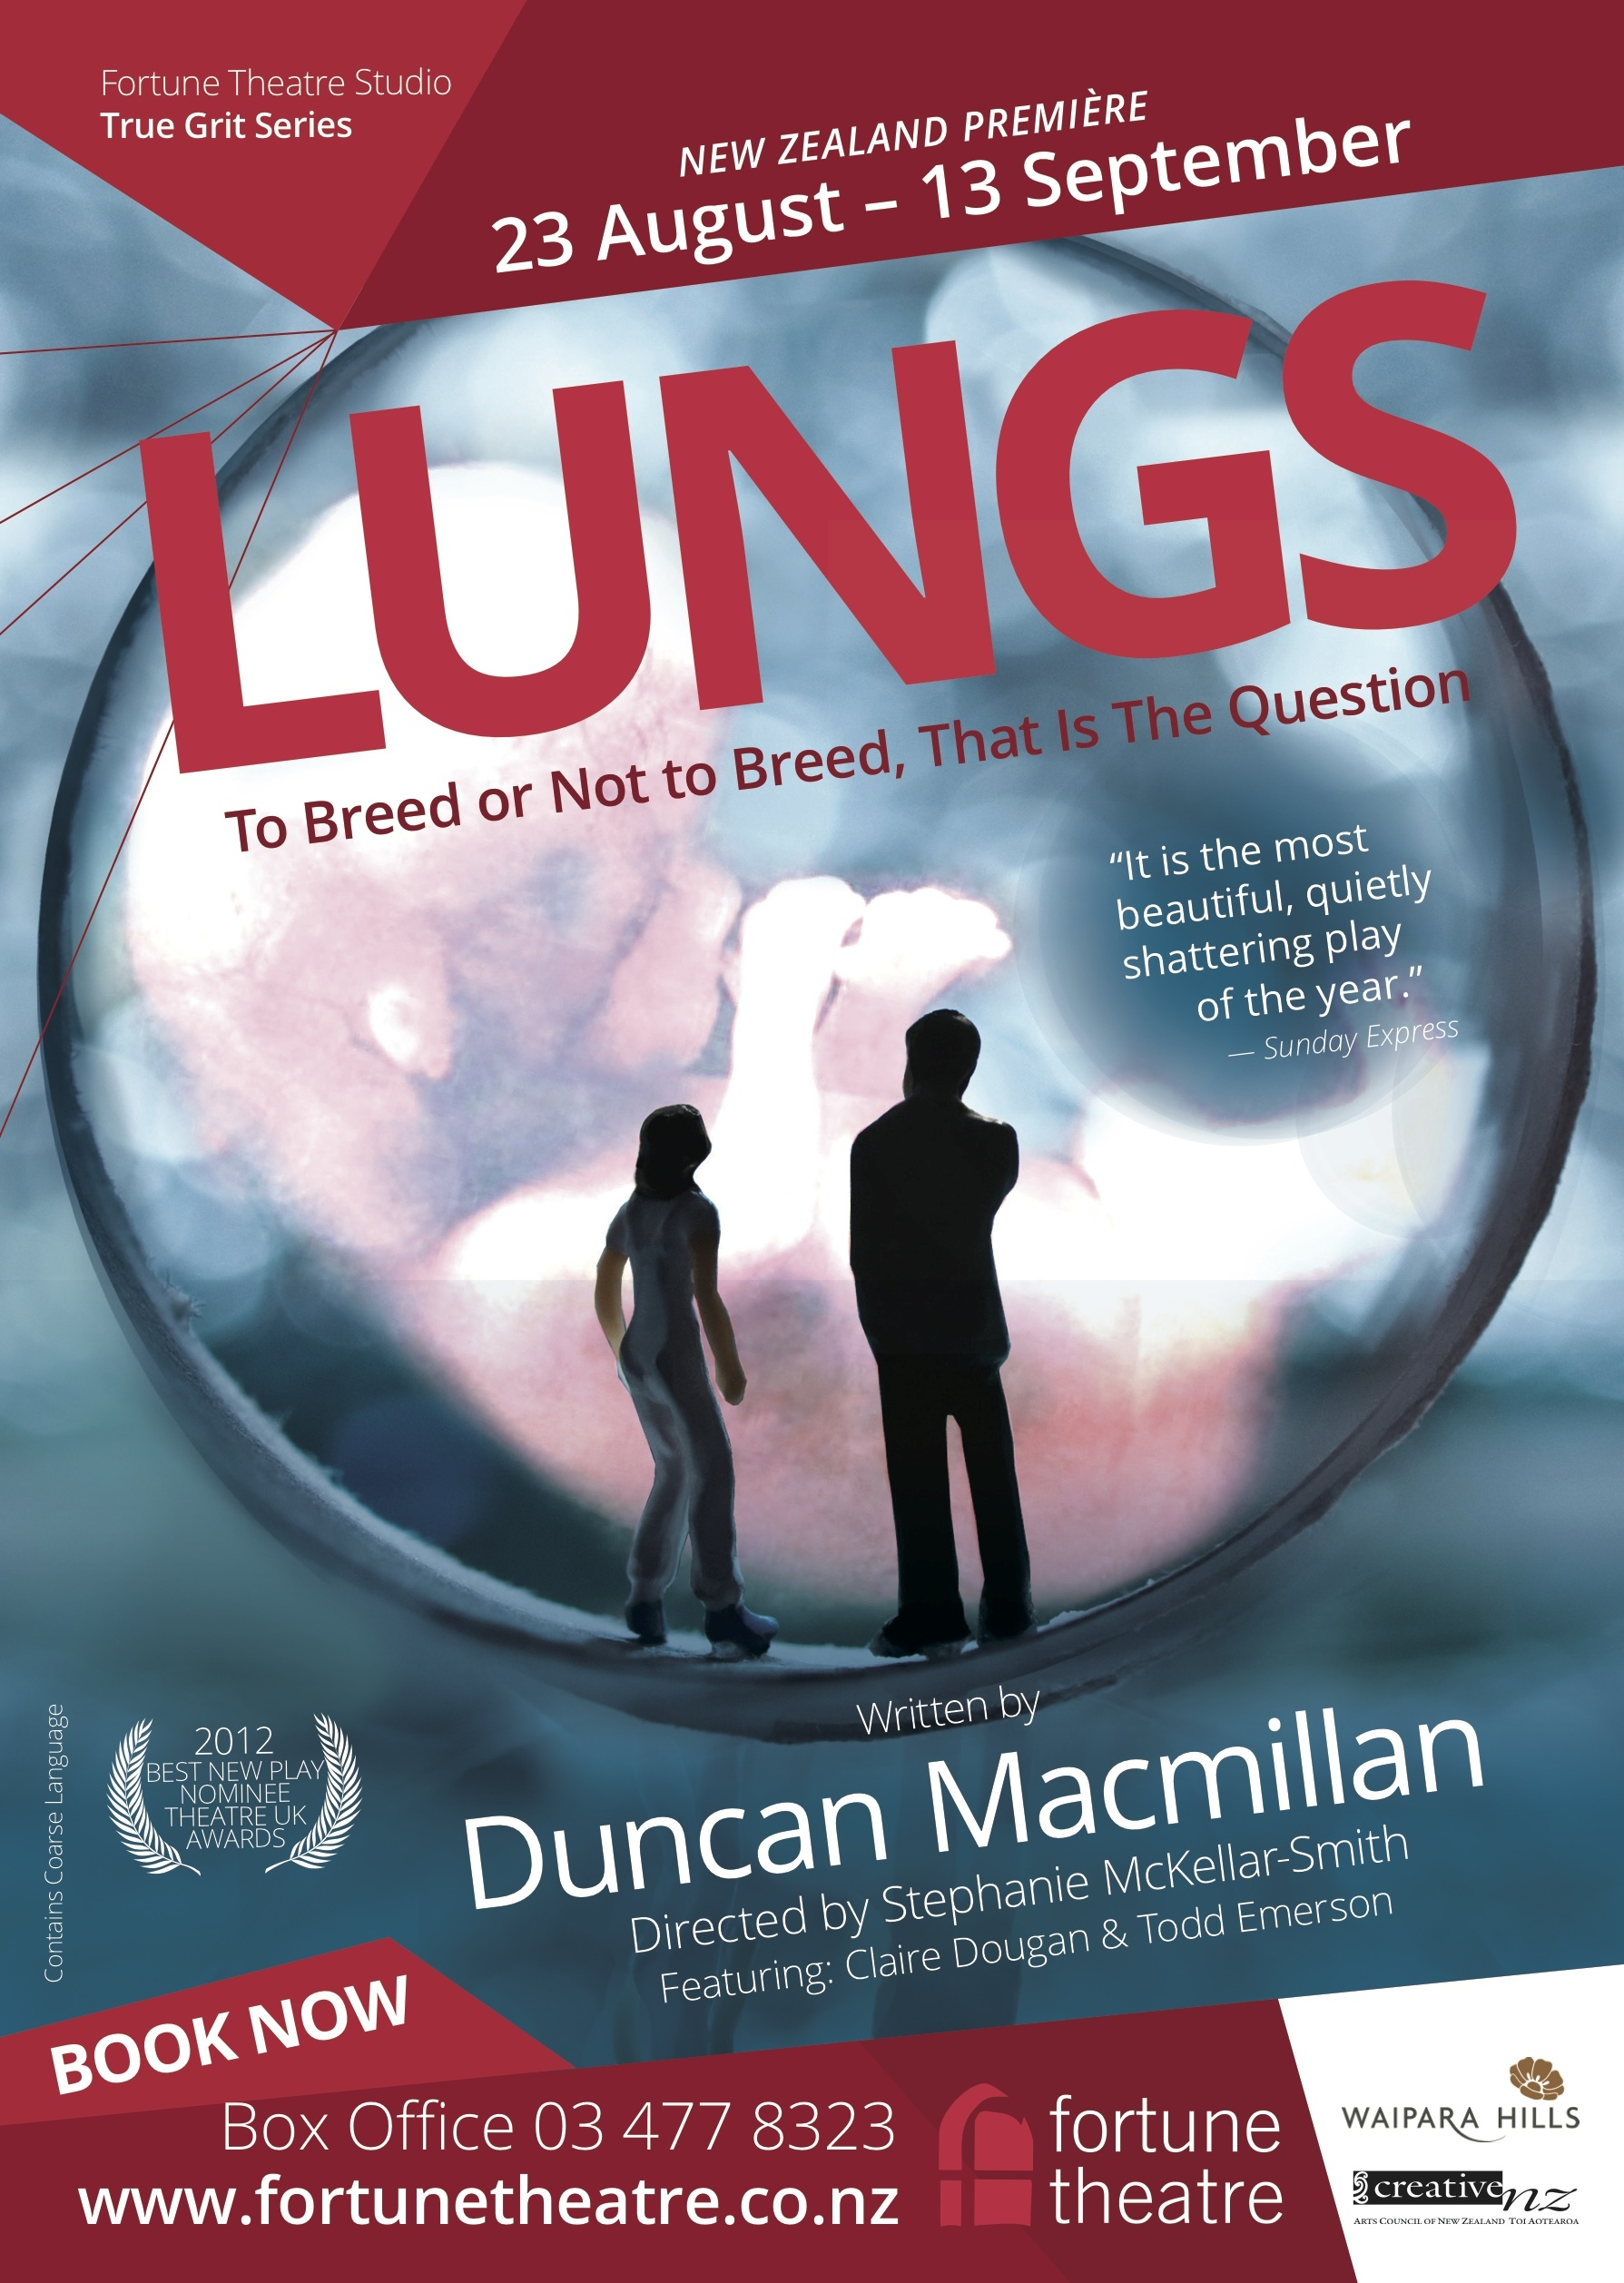 Lungs - at The Fortune Theatre until 13 September